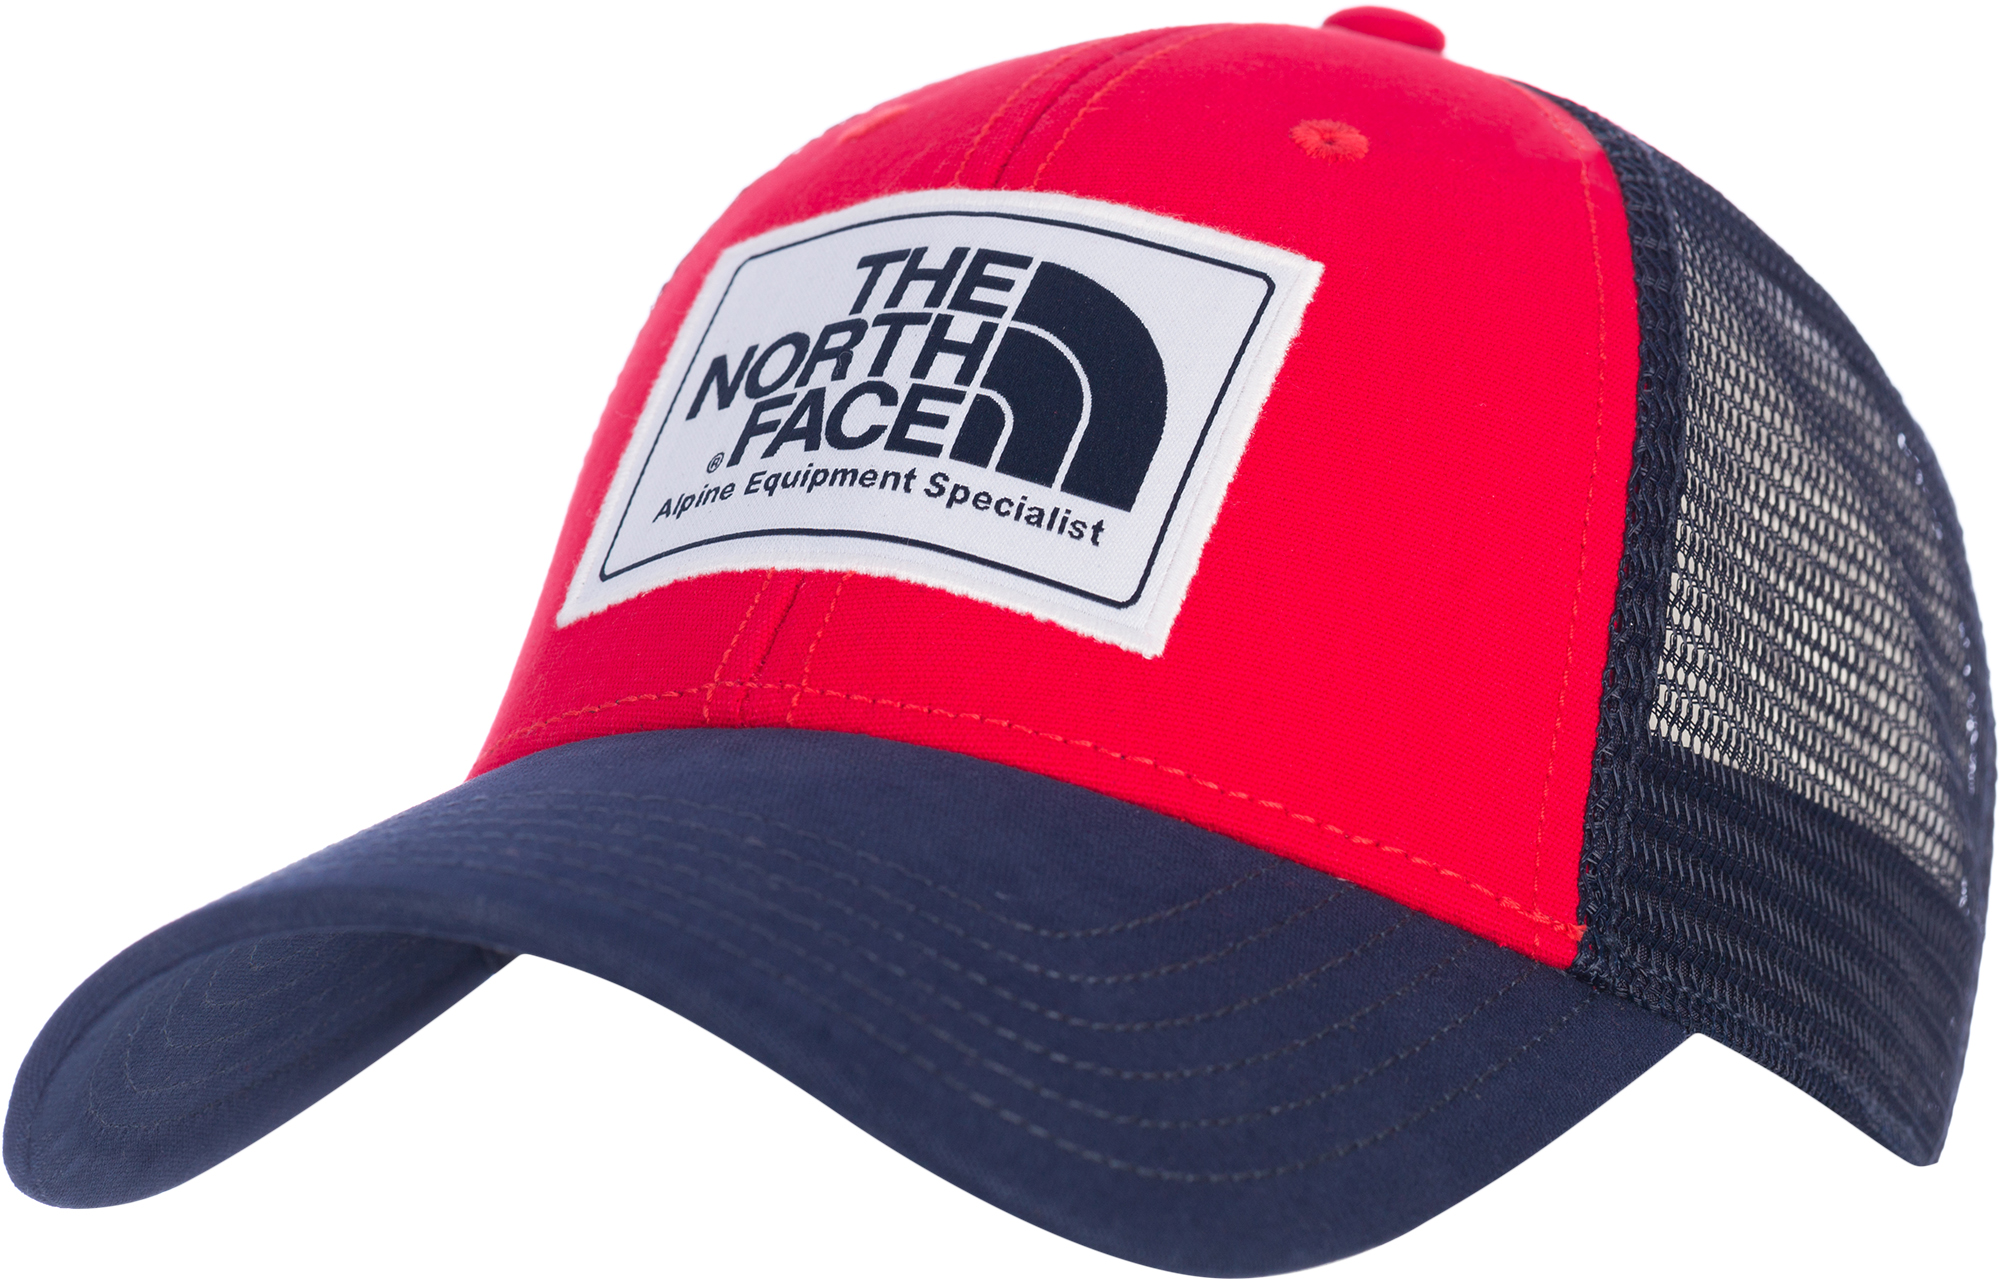 The North Face Бейсболка The North Face Mudder Trucker the north face the north face mudder trucker hat os